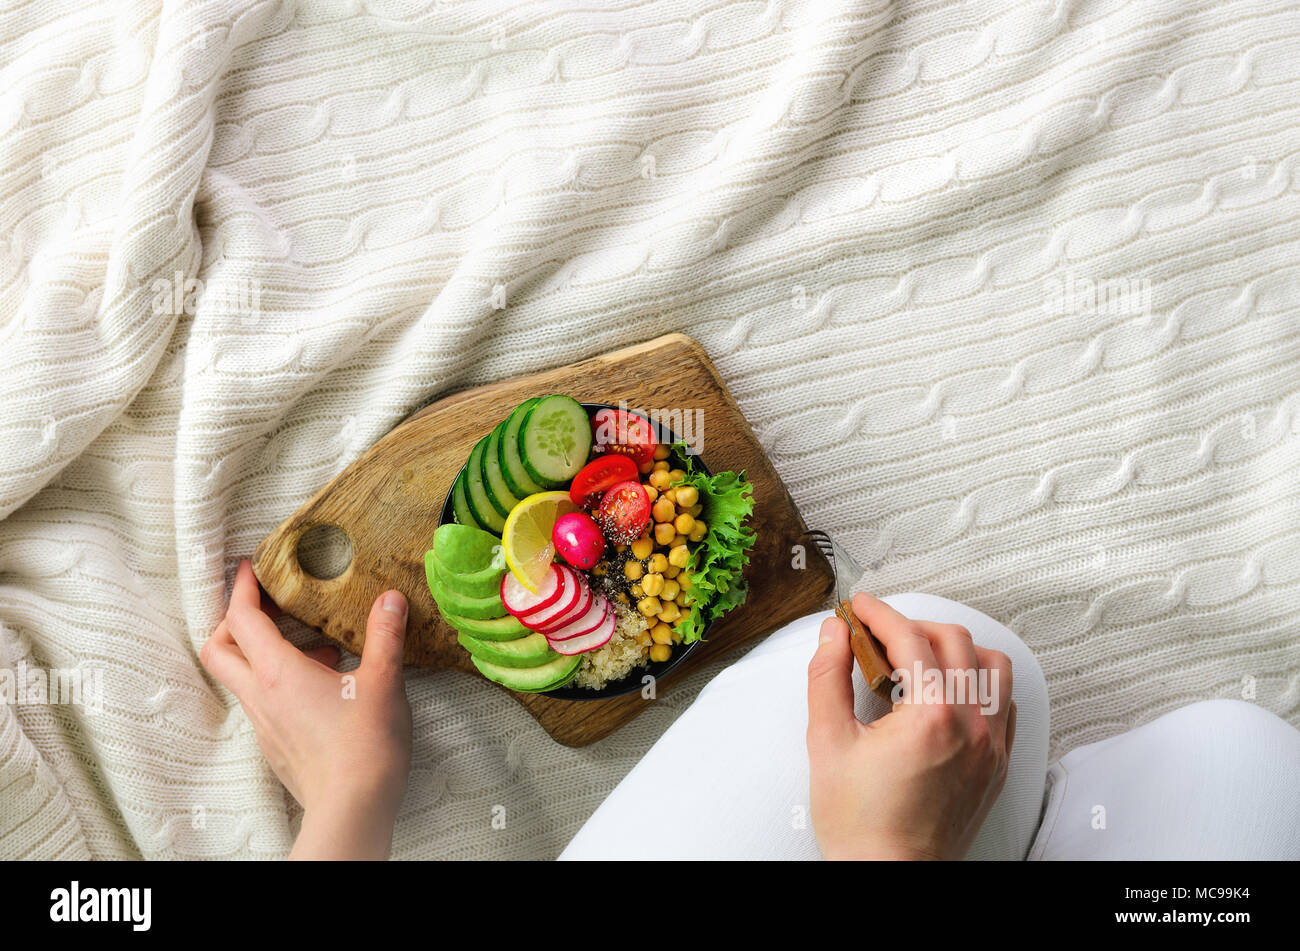 Girl in white jeans holds in hands fork, vegan breakfast meal in bowl with avocado, quinoa, cucumber, radish, salad, lemon, cherry tomatoes, chickpea, - Stock Image